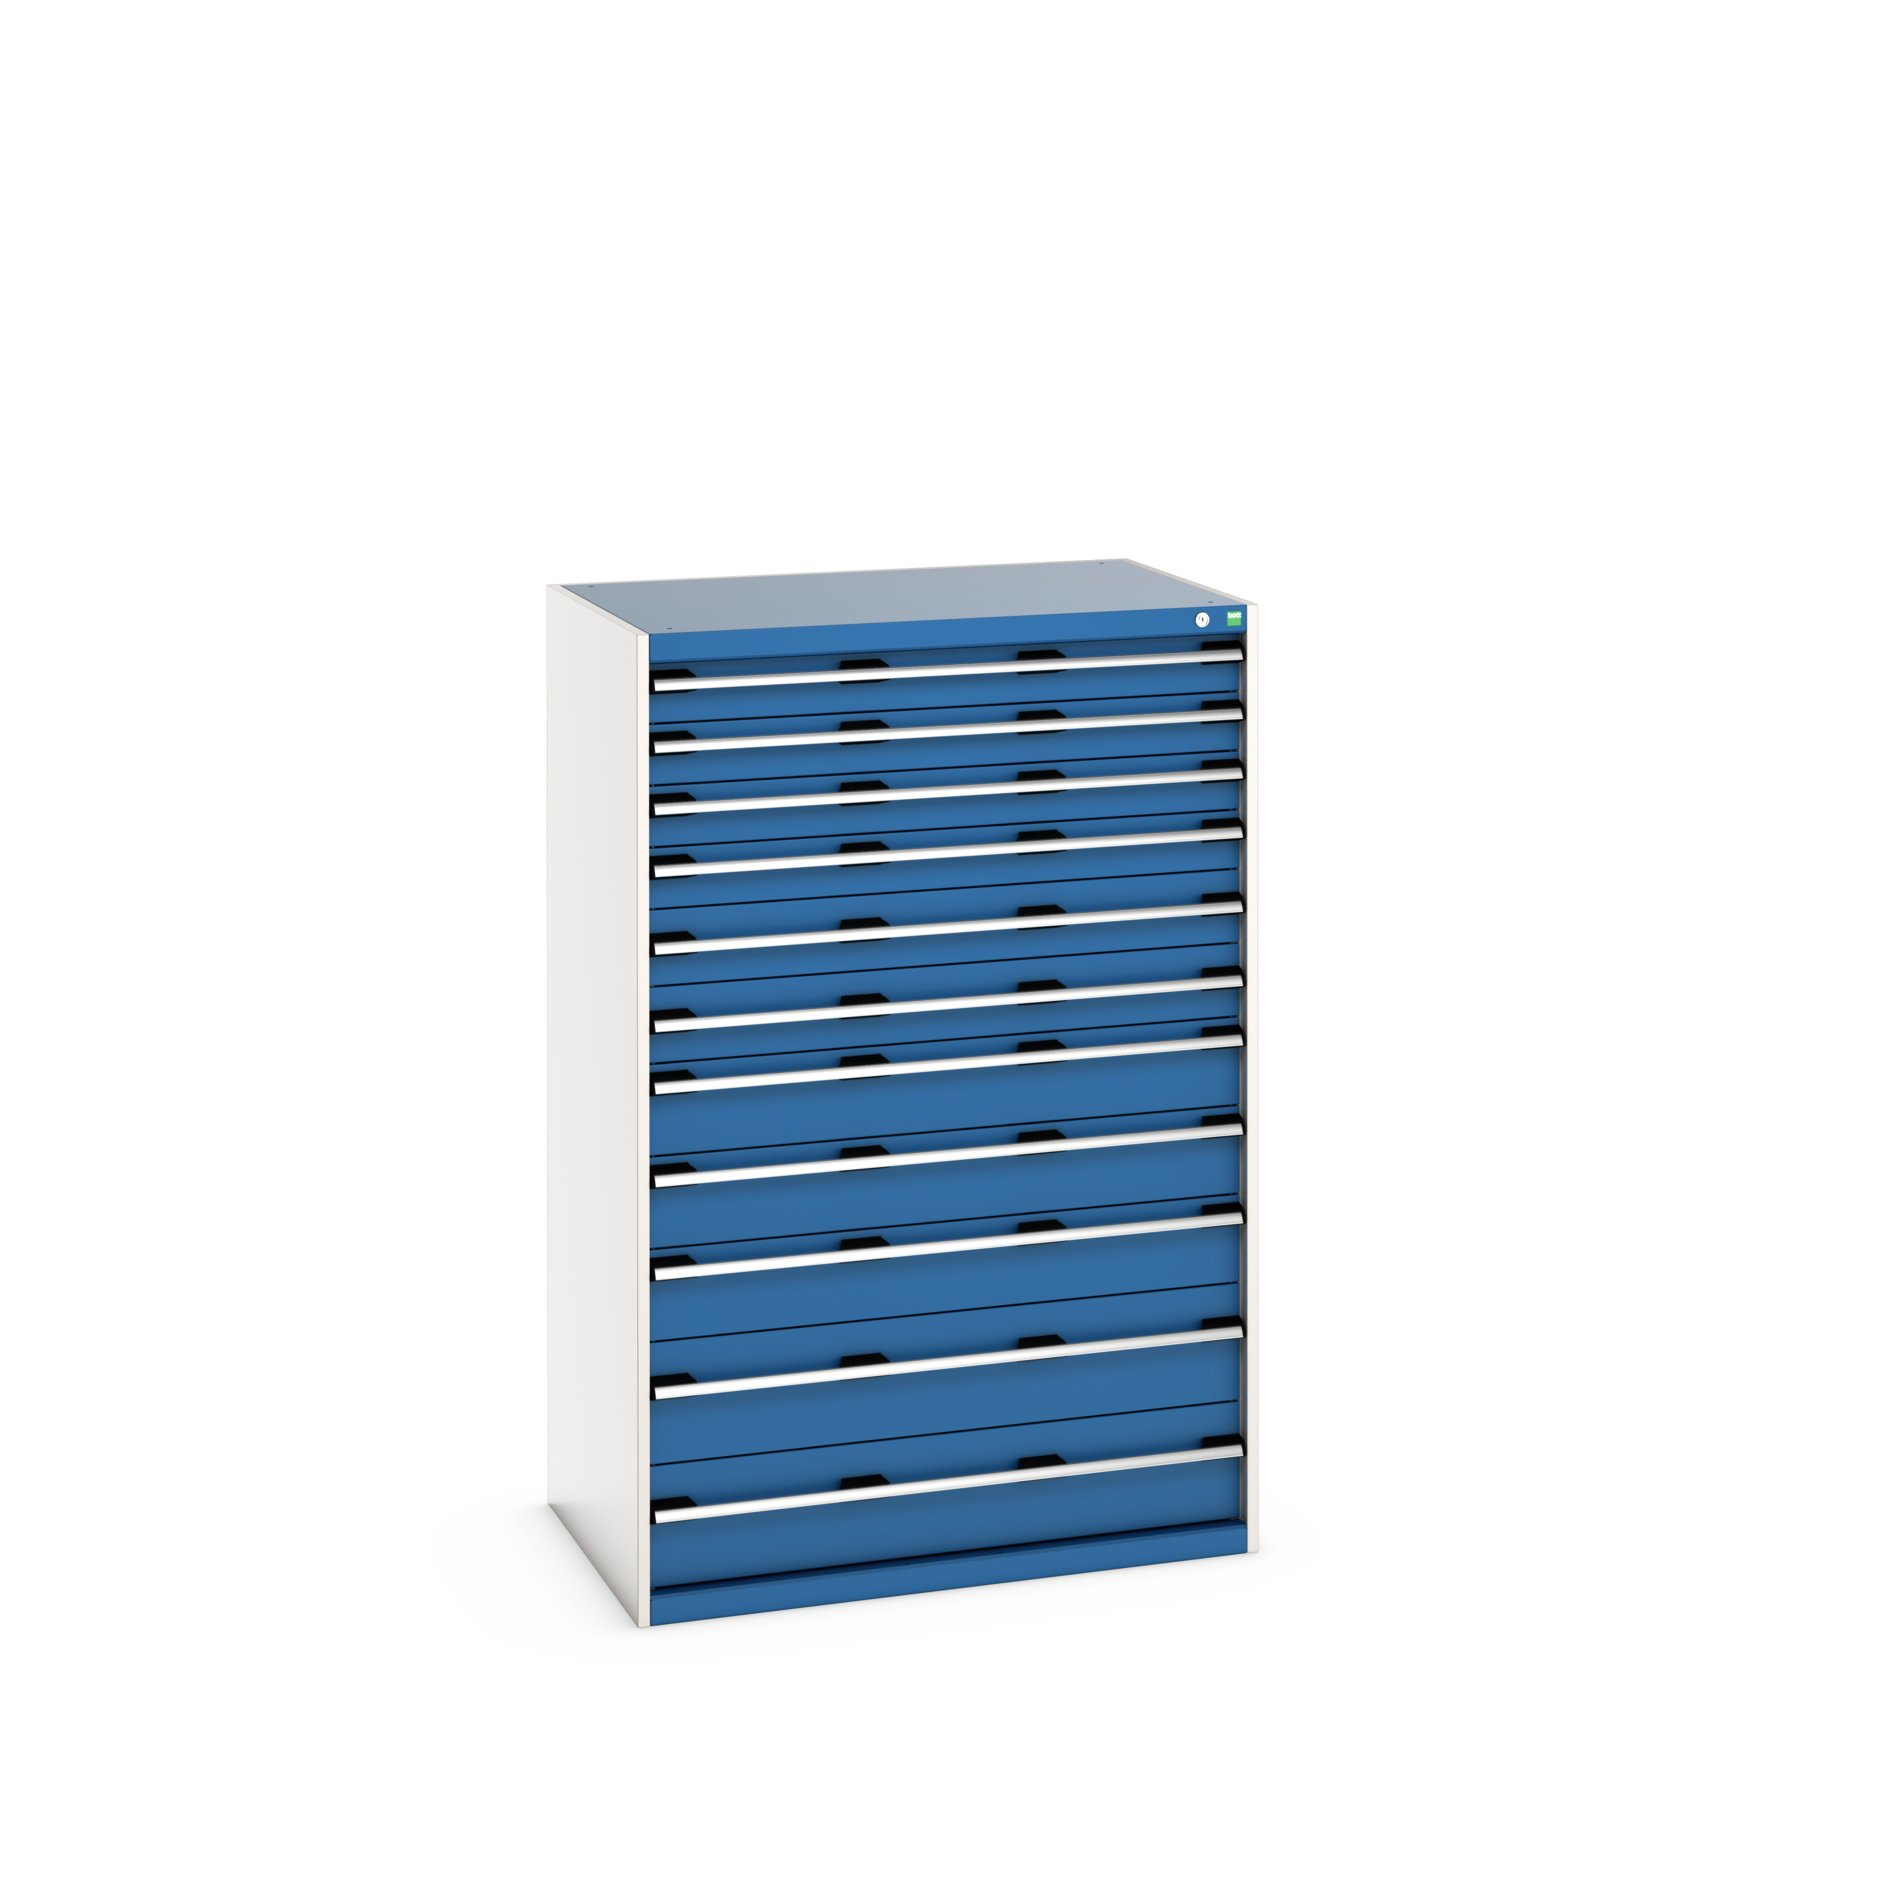 Bott Cubio Drawer Cabinet With 11 Drawers